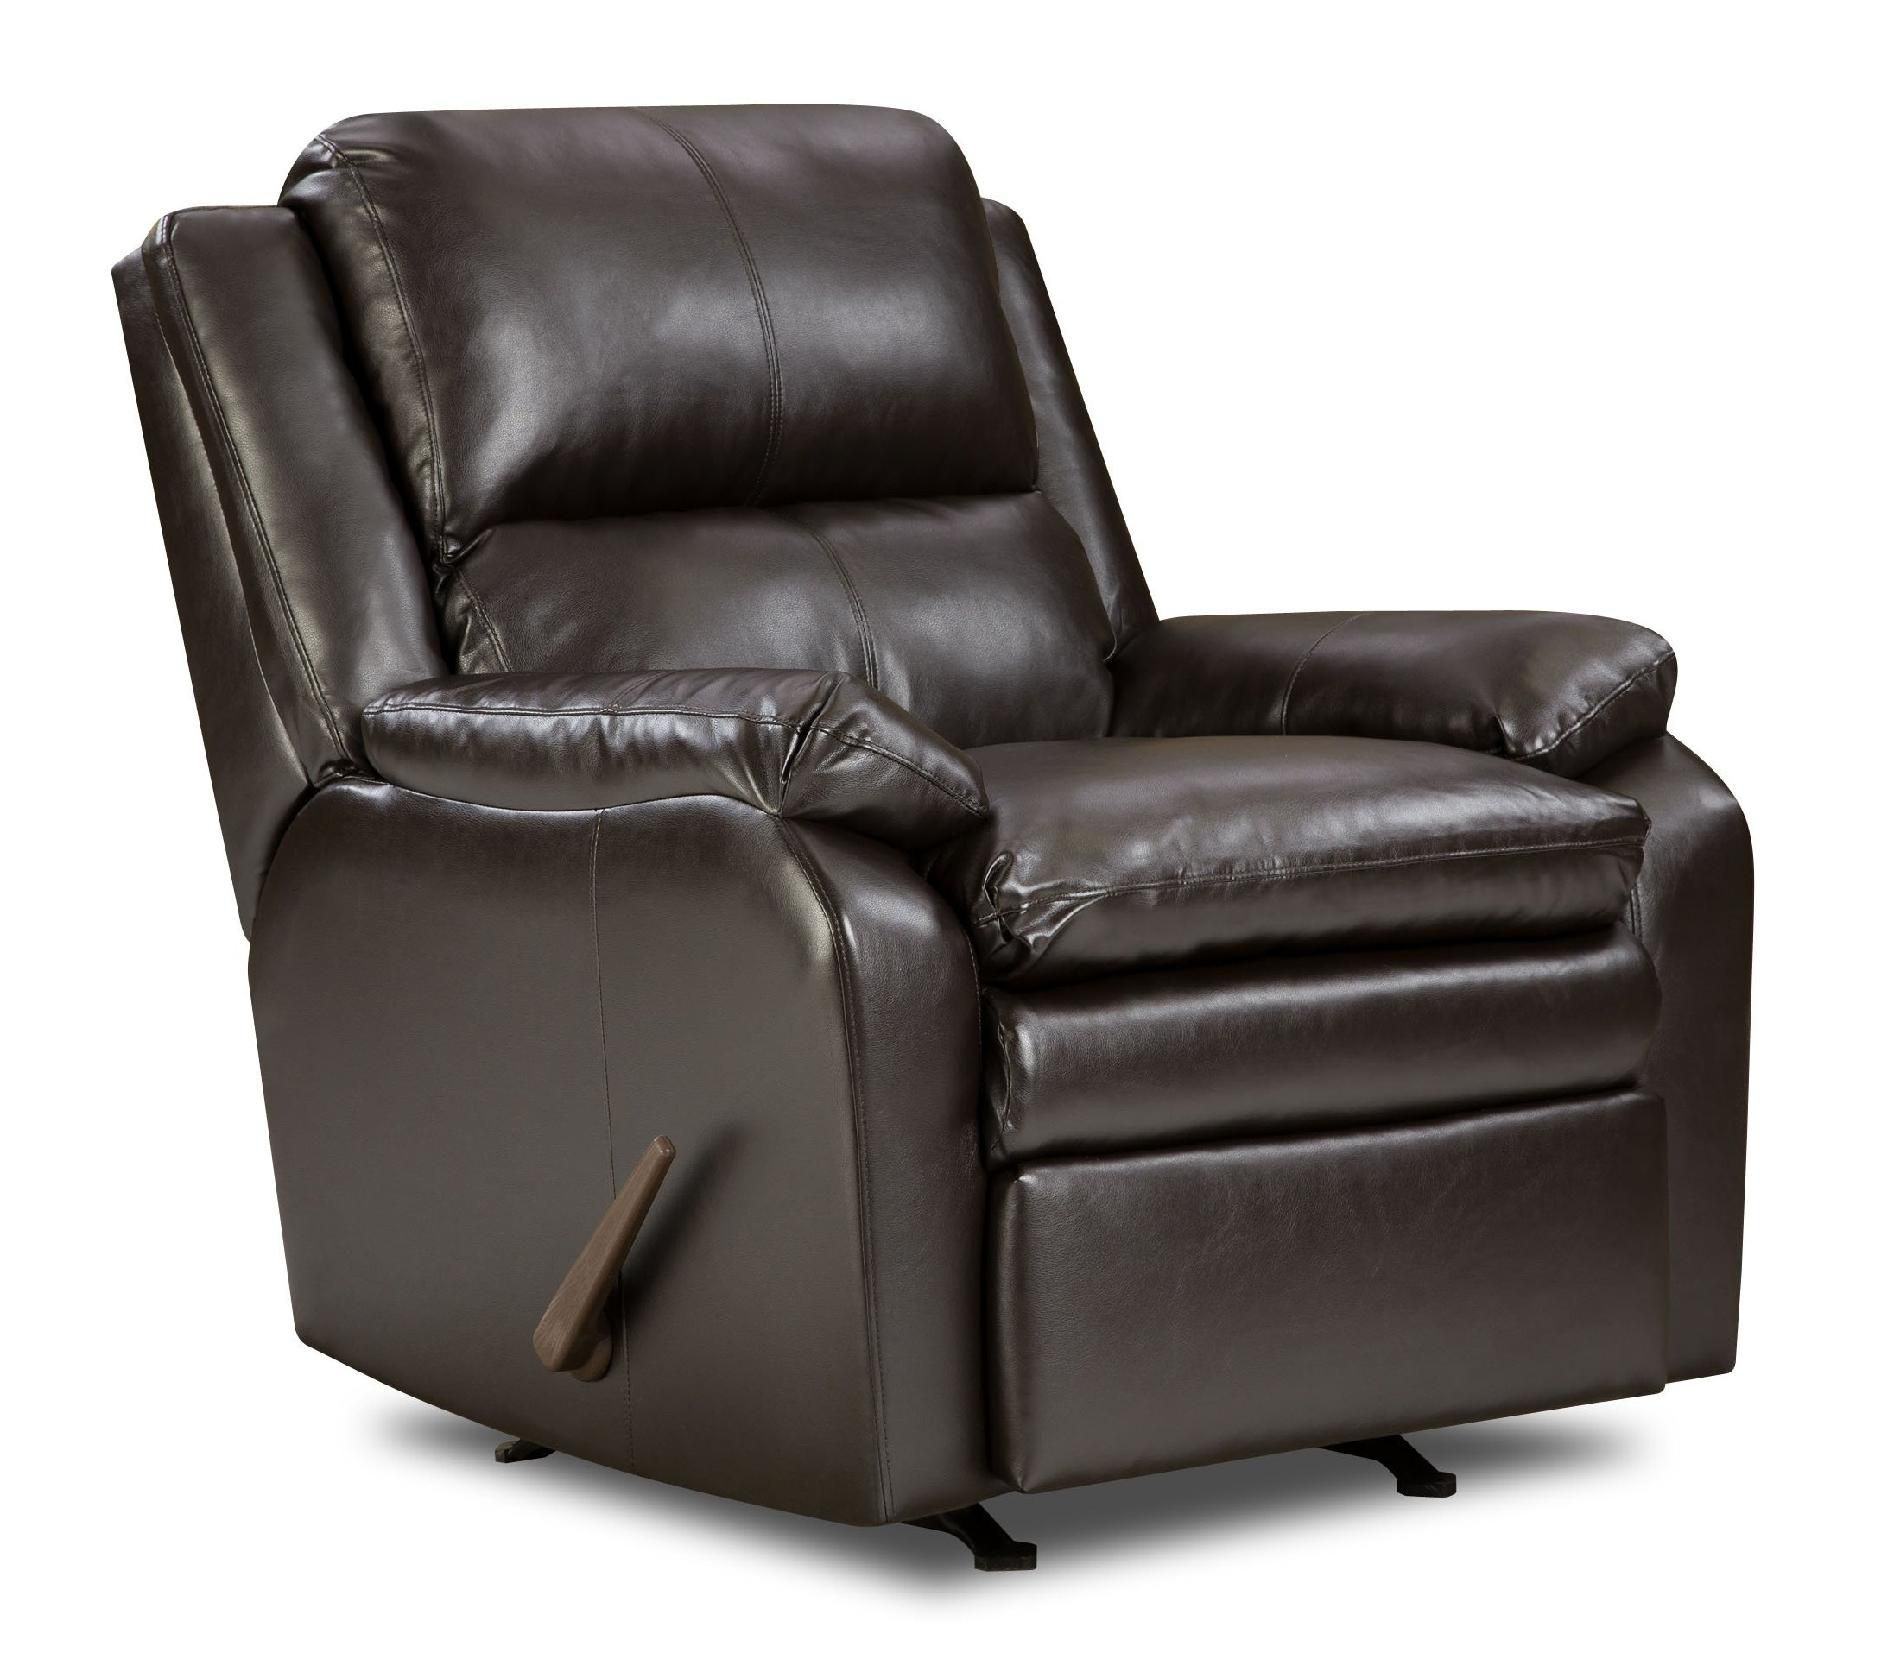 sears recliner chairs ghost bar chair simmons upholstery baron leather rocker shop